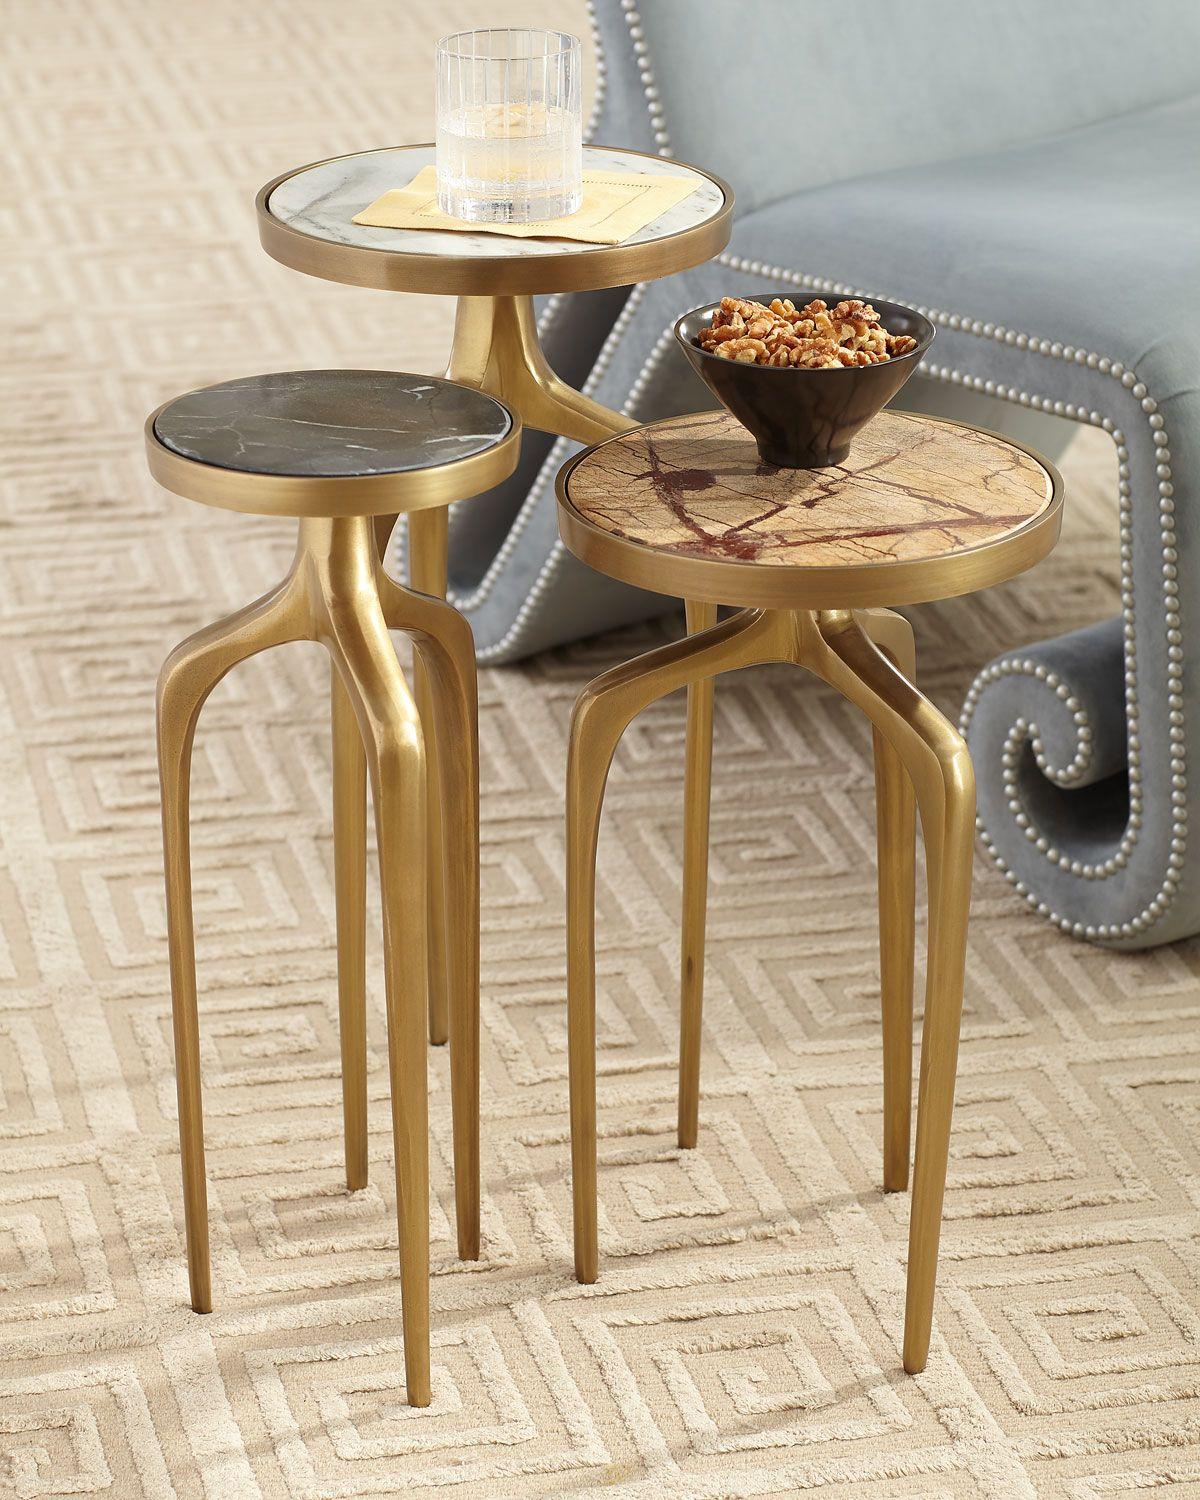 Regina Andrew Mixer Tables Set Copper Accent Table Table Settings Coffee Table Design [ 1500 x 1200 Pixel ]